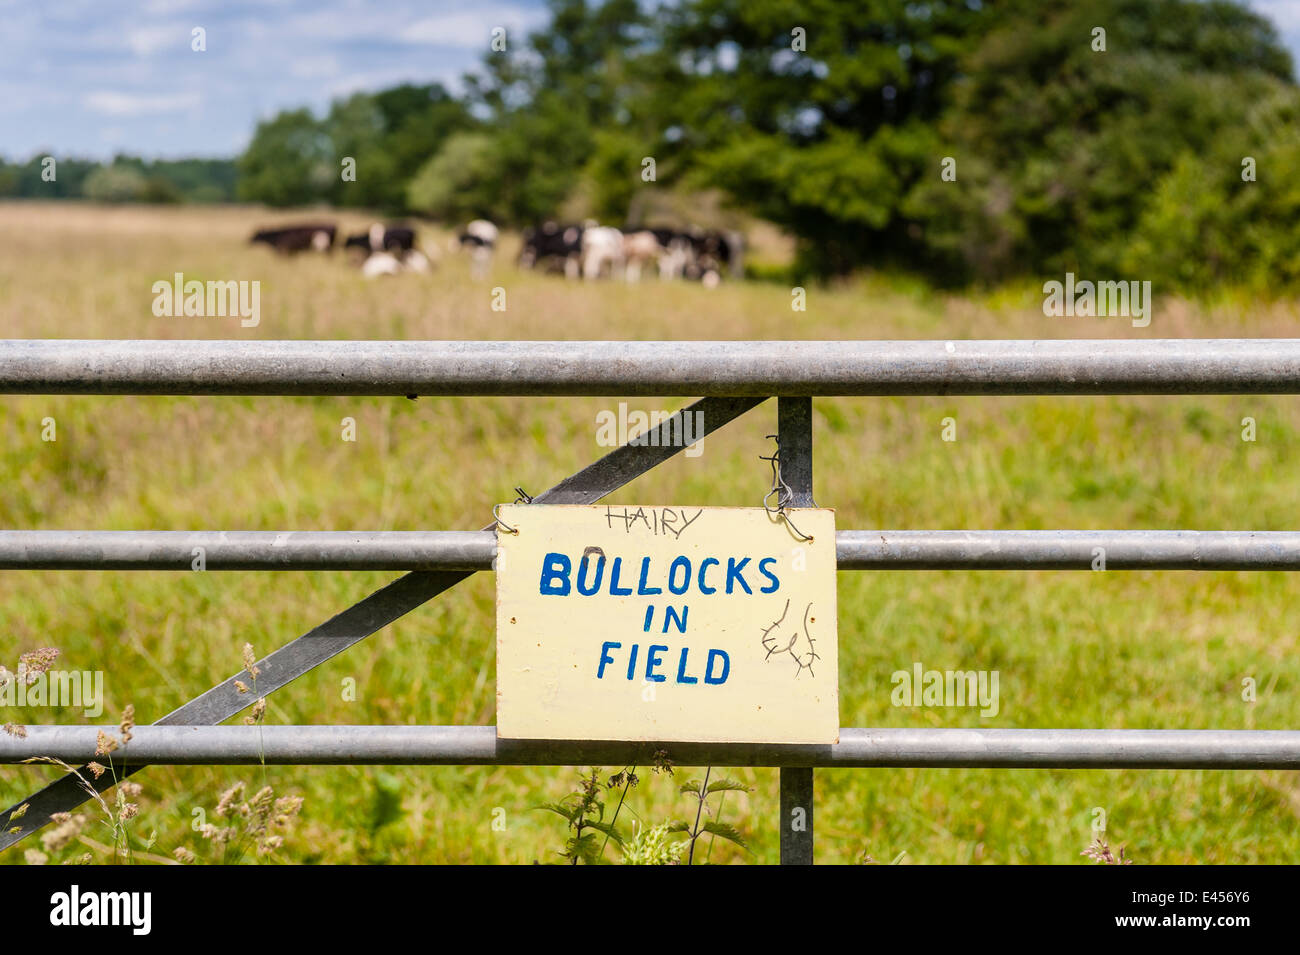 A humorous sign in the Suffolk countryside,see description - Stock Image